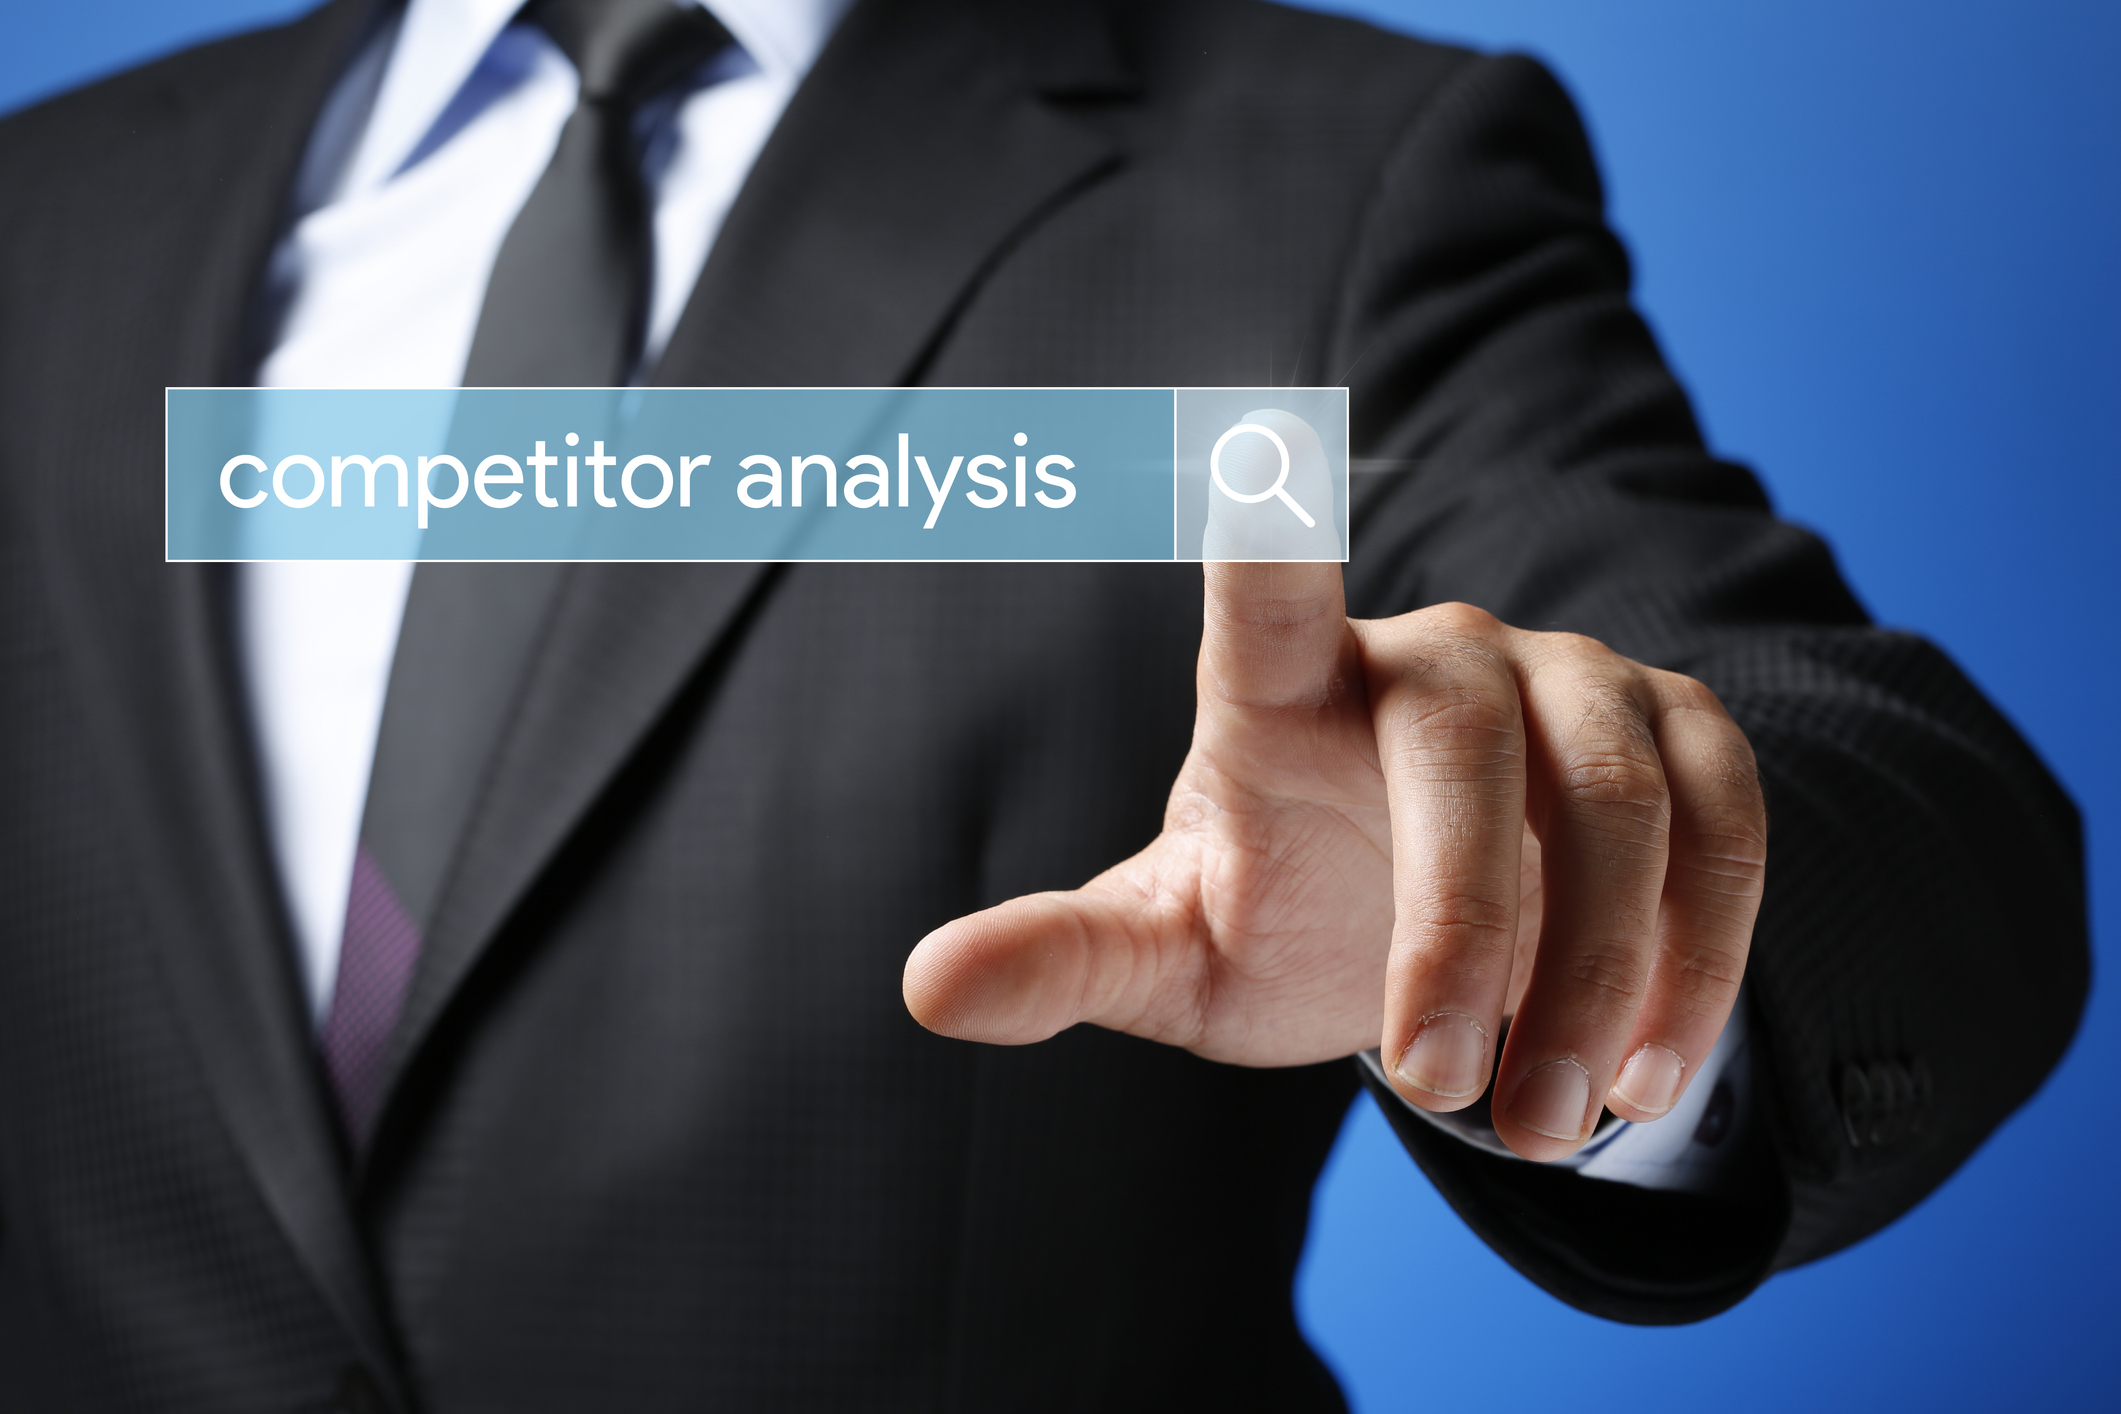 How To Do Competitor Analysis